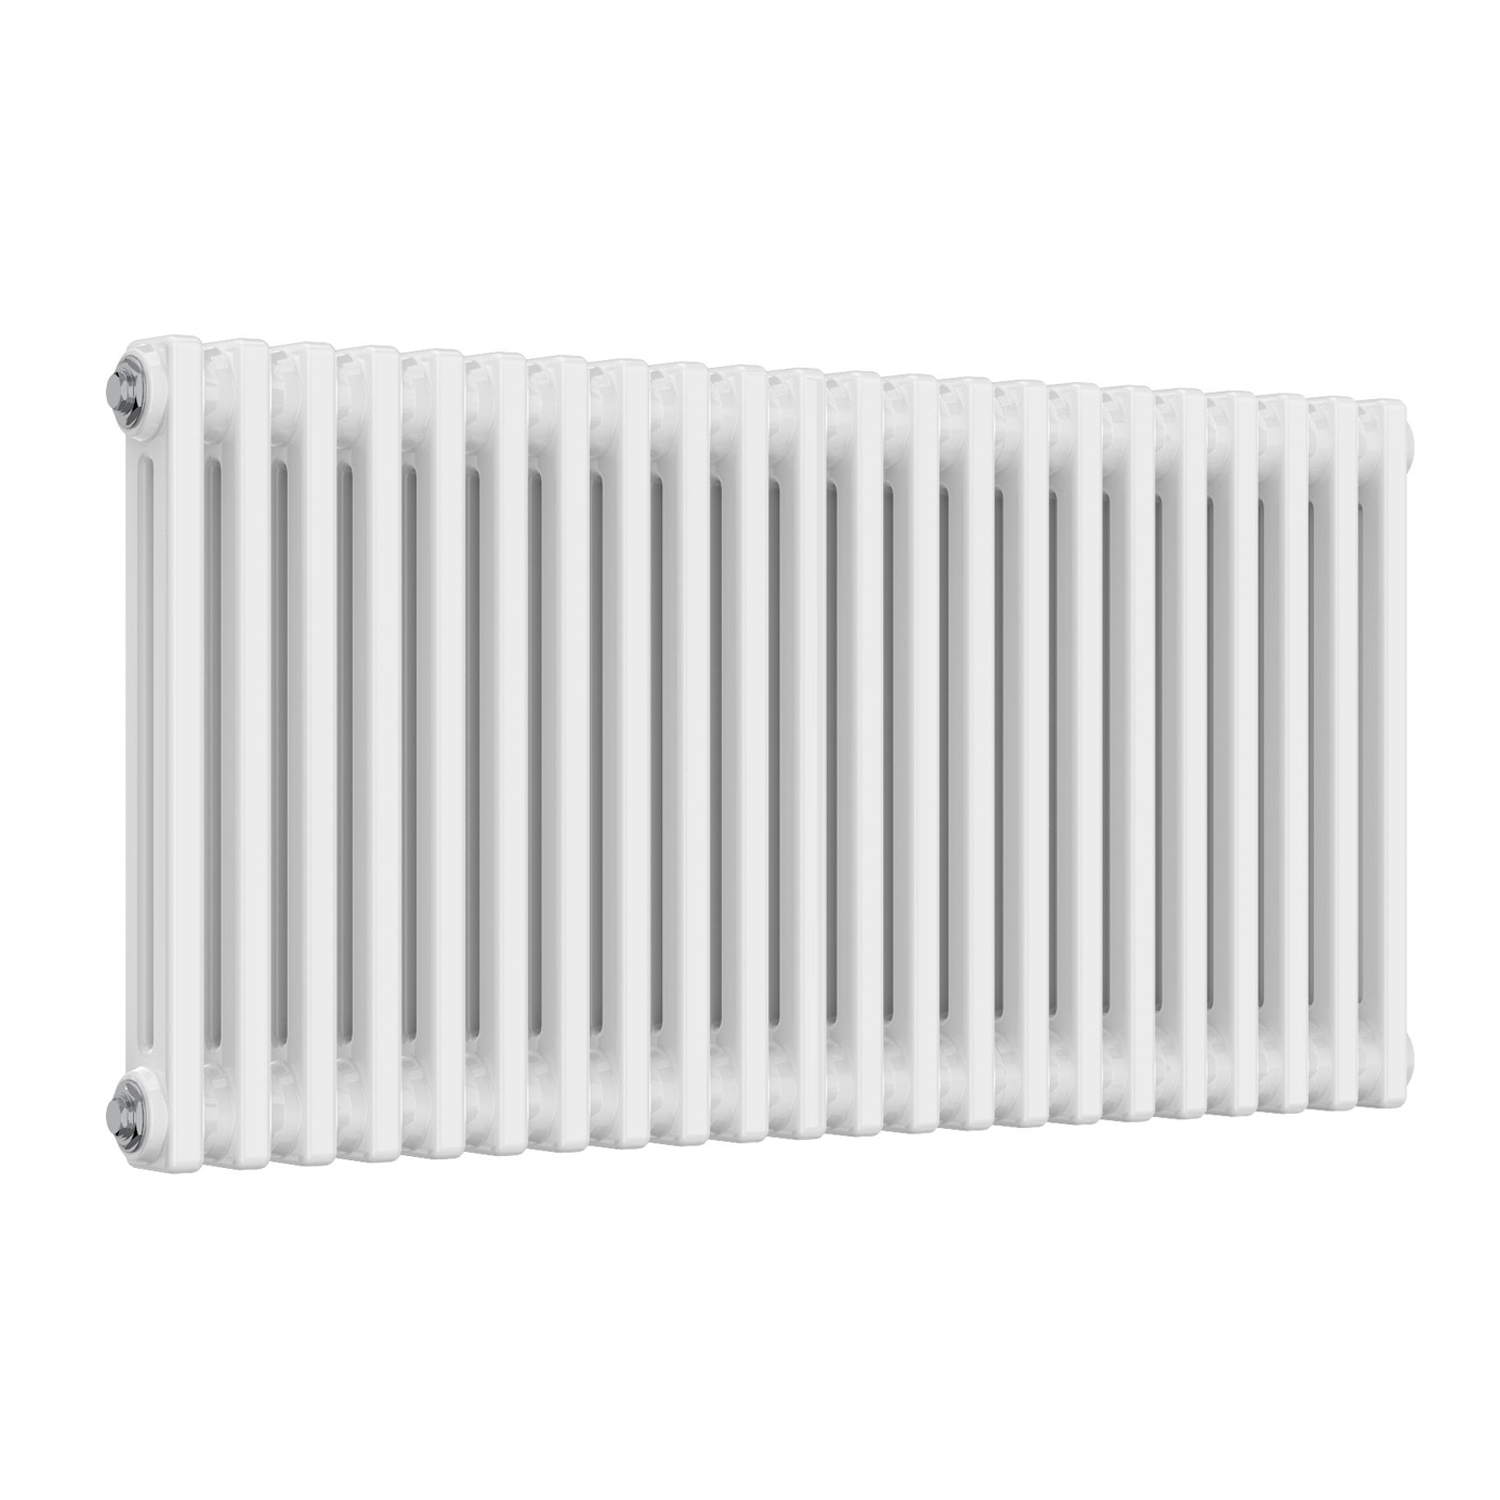 Stelrad Radical Radiator 500mm H x 400mm W Single Convector 10mm Straight TRV